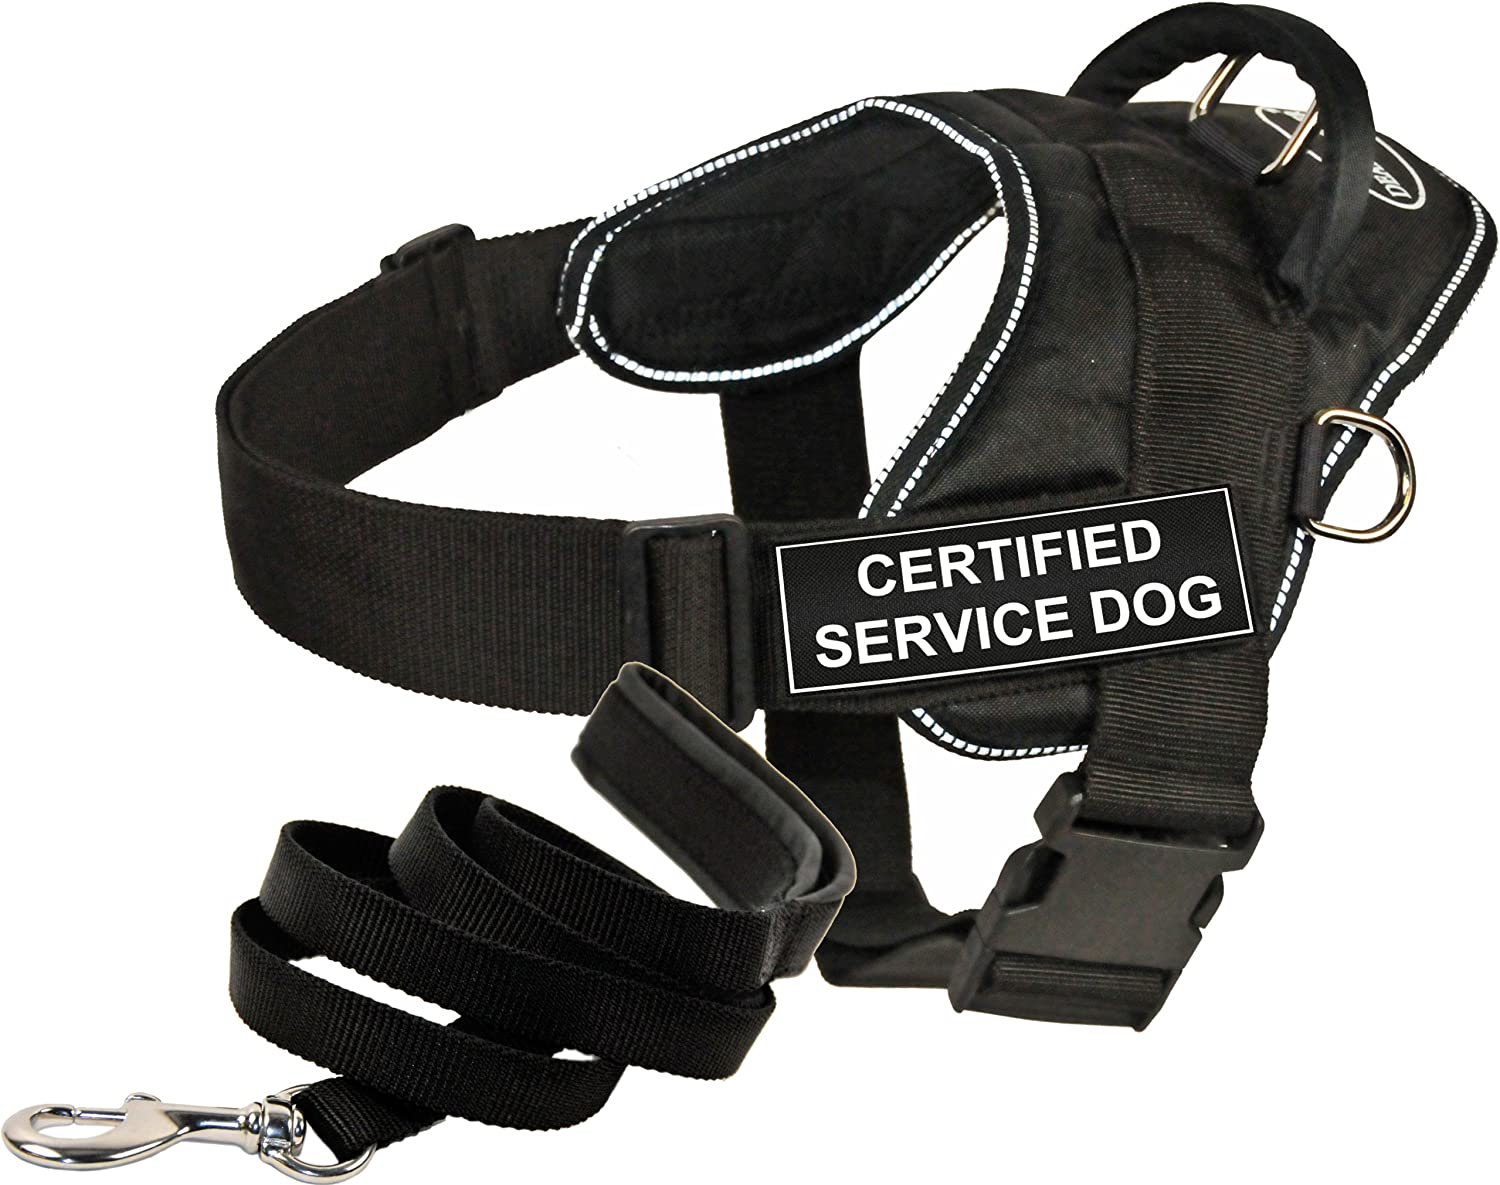 Dean and Tyler Bundle  One DT Fun Works  Harness, Certified Service Dog, Reflective, XXSmall + One Padded Puppy  Leash, 6 FT Stainless Snap  Black